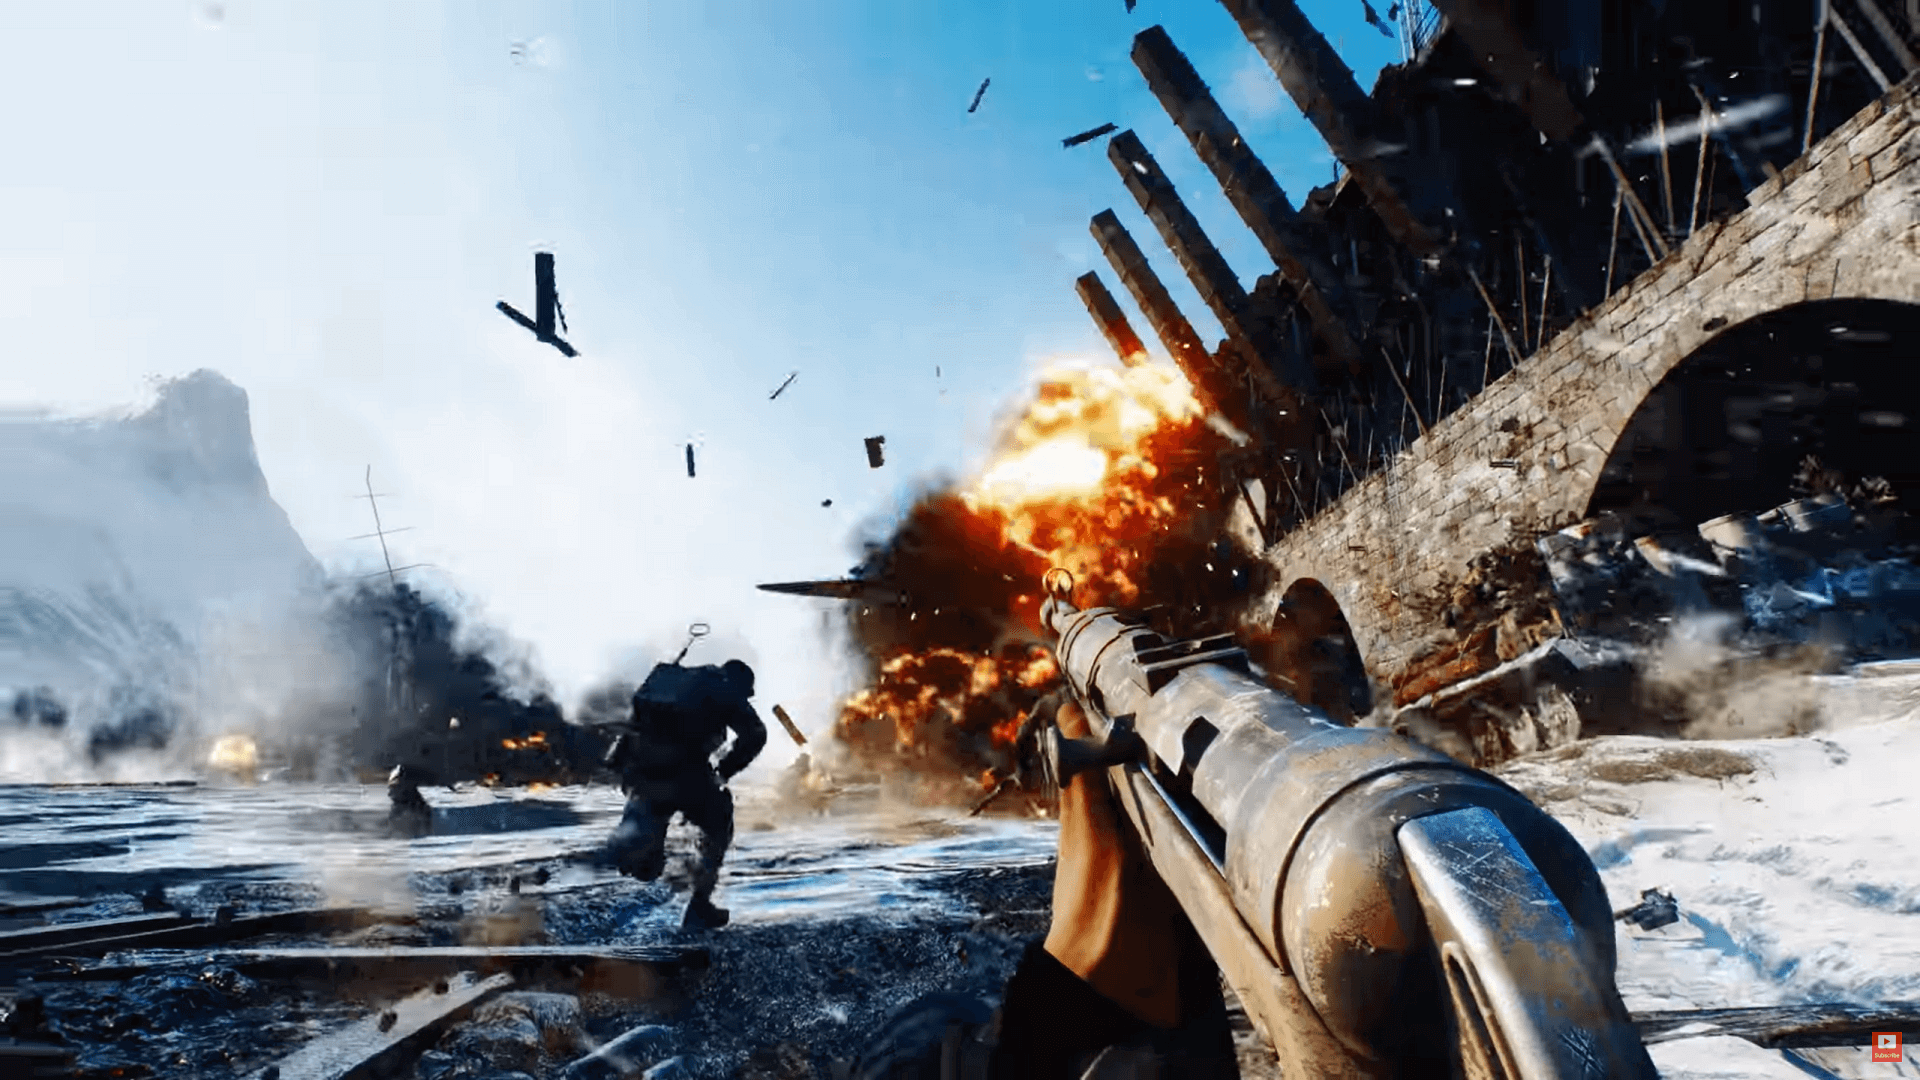 Battlefield destruction in Battlefield 5